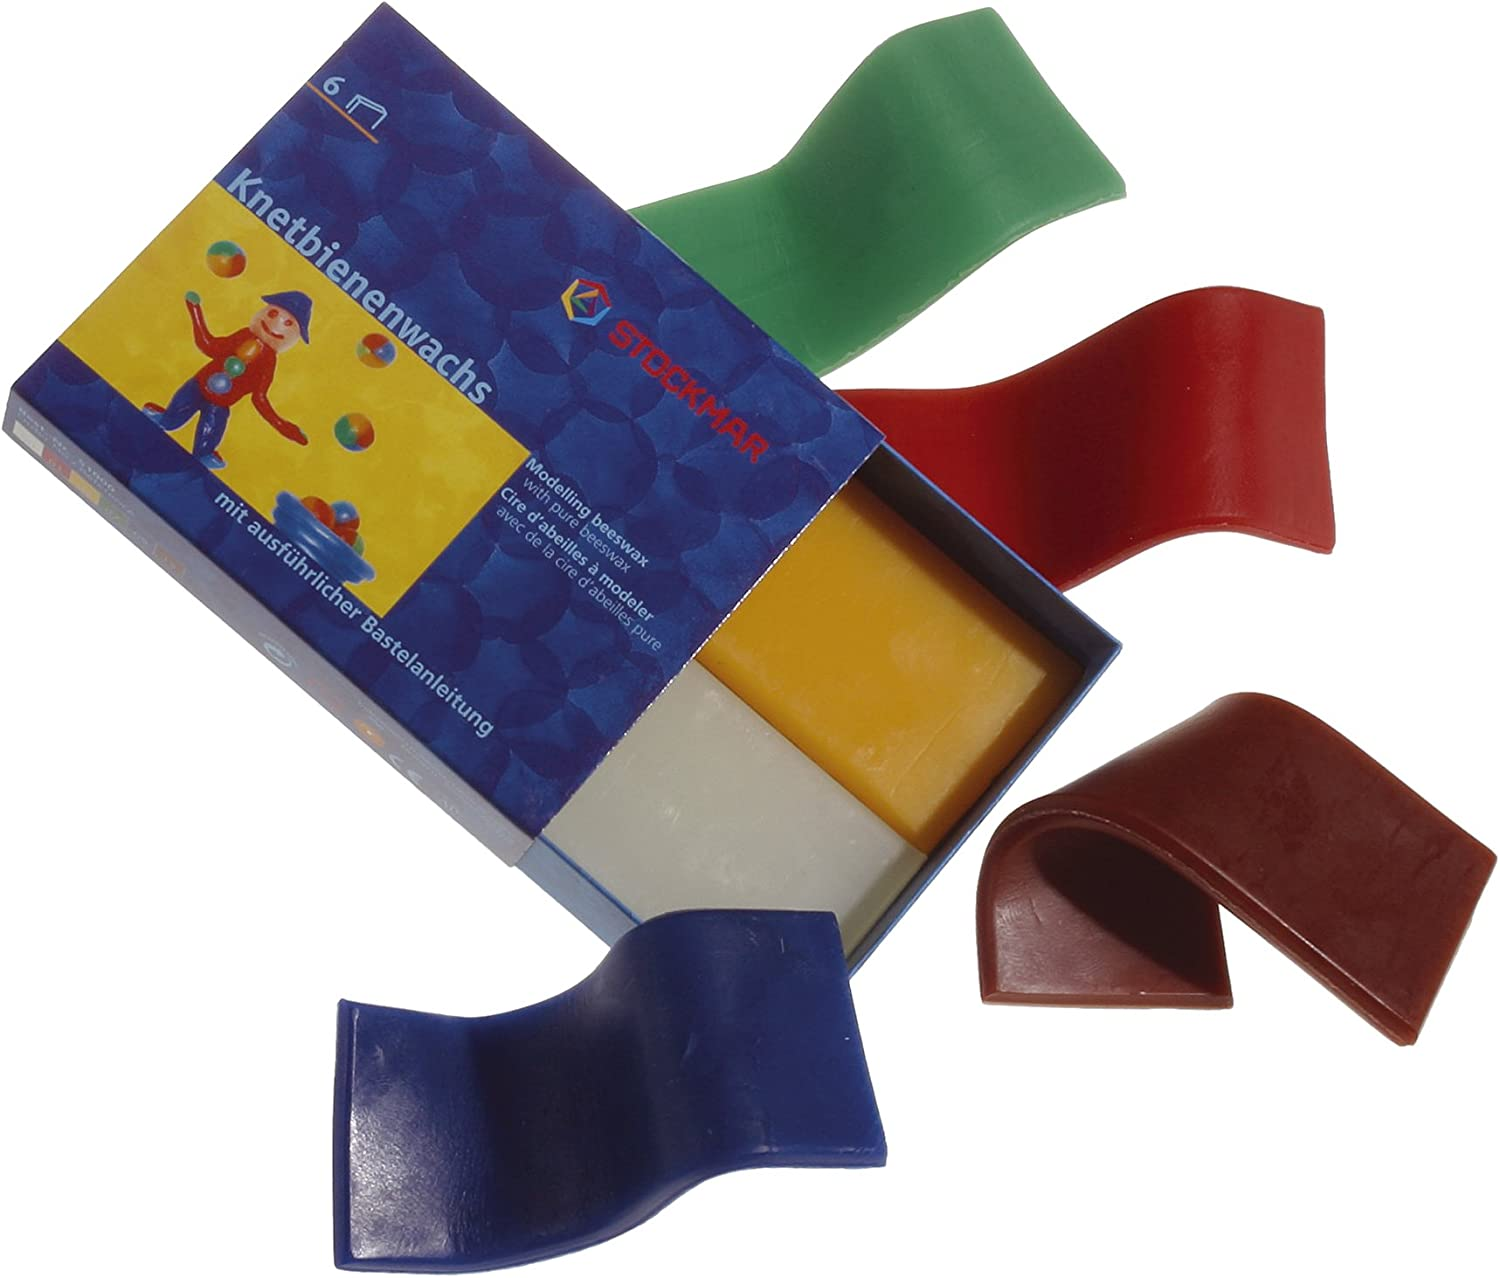 Stockmar Decorative Modelling Beeswax - 6 Colors - 100x40 mm